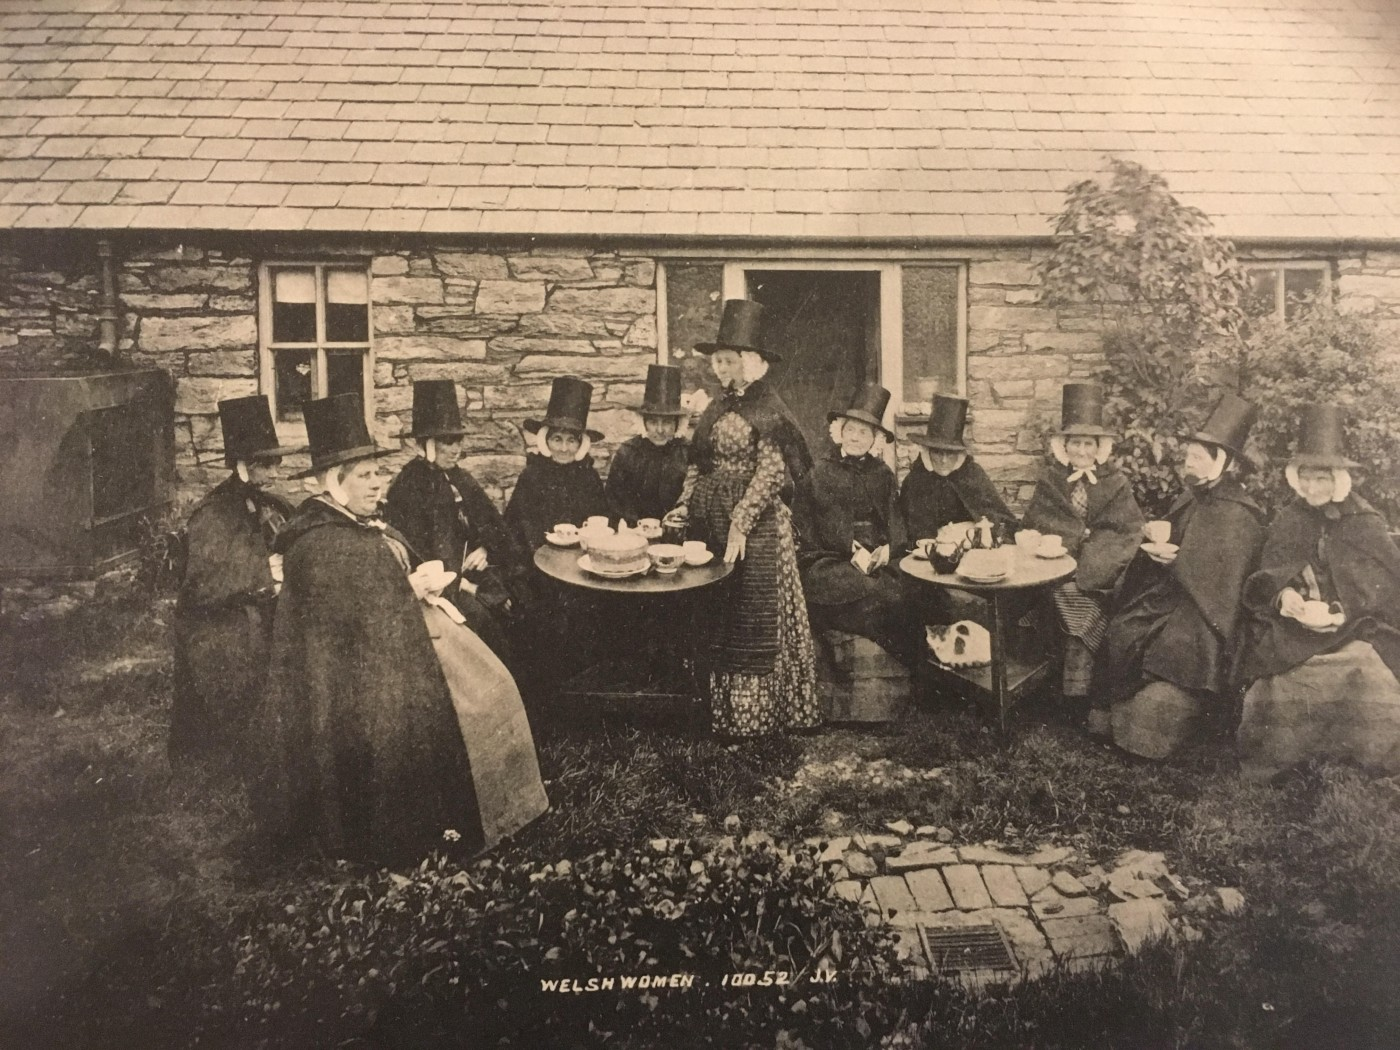 4: Postcard of Welsh women in costume having tea. c.1900. Image courtesy of Y Lanfa Powysland Museum.